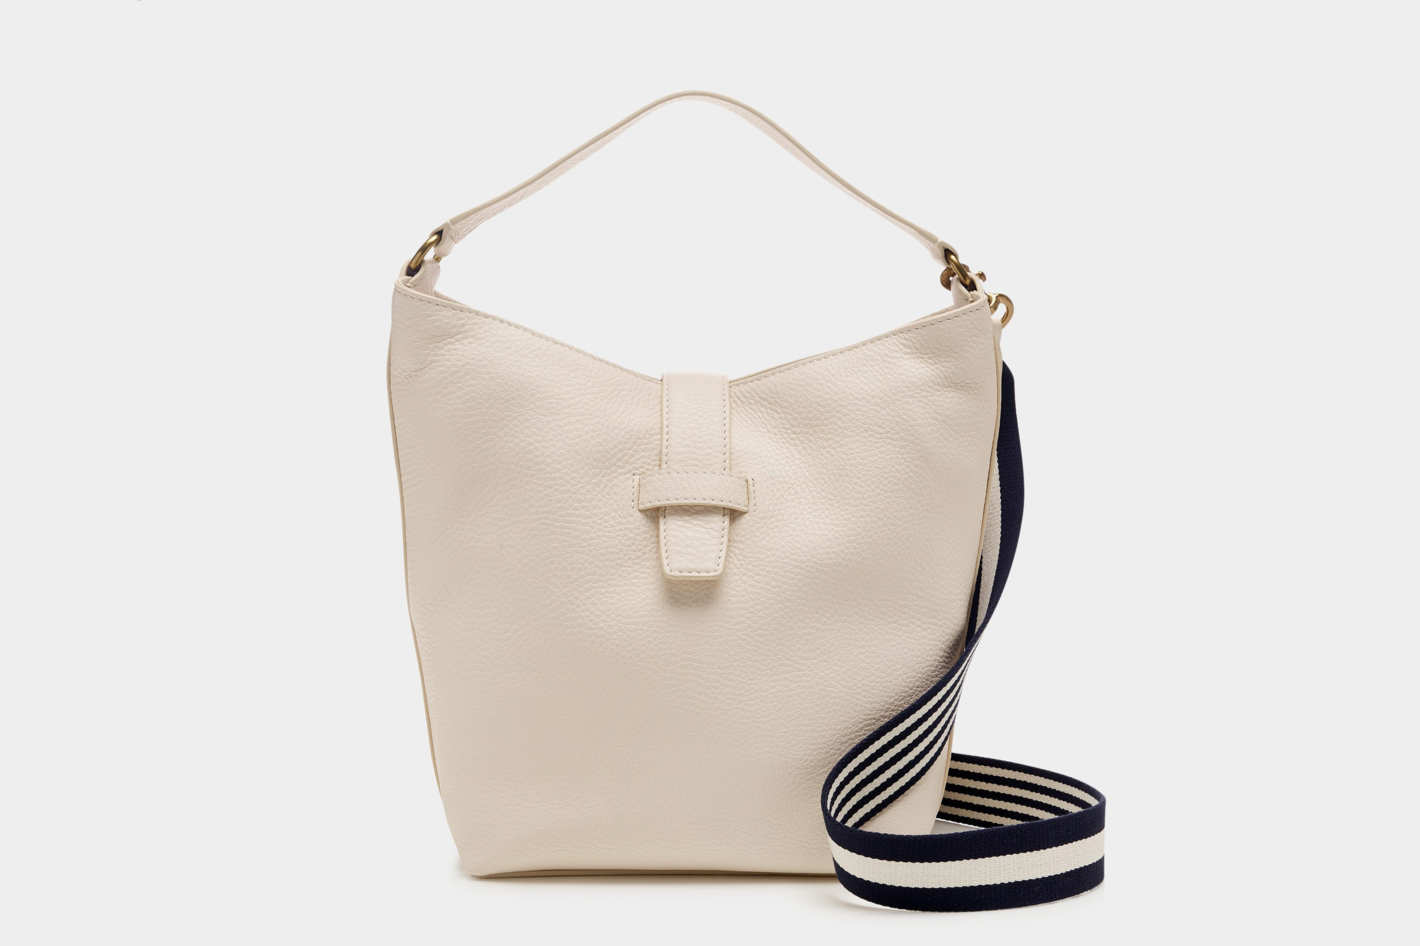 J.Crew Signet Hobo Bag